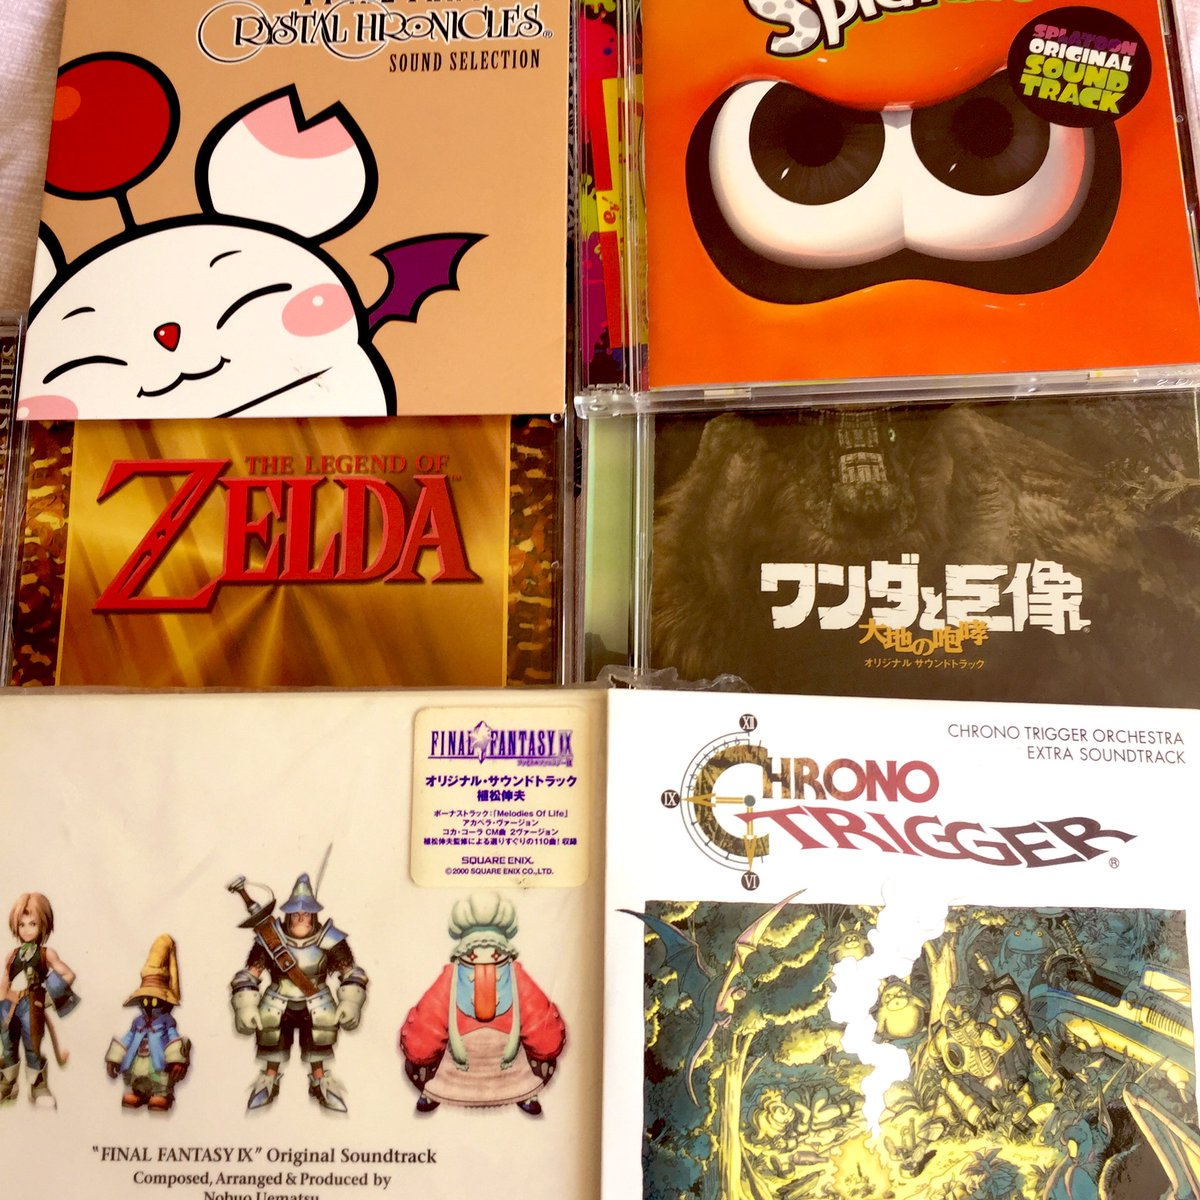 Rummaging through boxes of old stuff and found some of my old video game soundtrack CDs! 👌🏼 What are your favourite video game soundtracks? #gamingcommunity #videogames